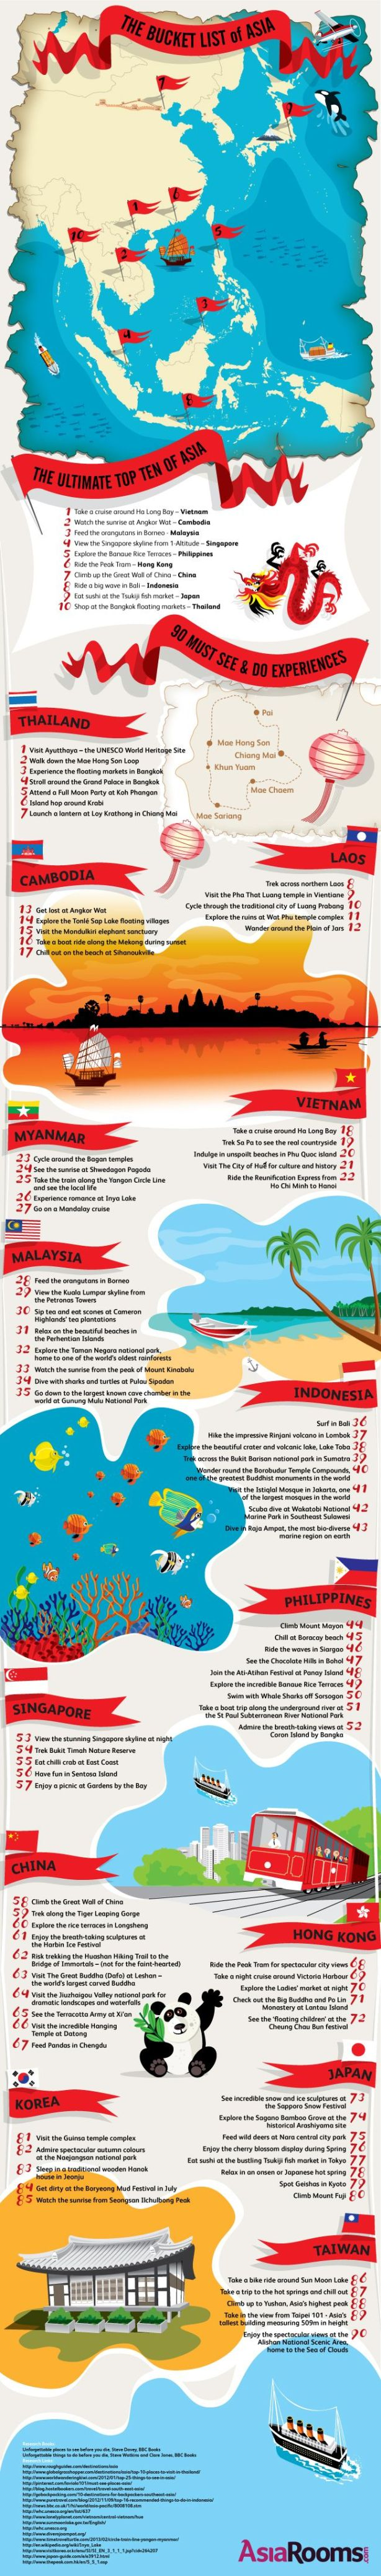 Bucket List of Asia